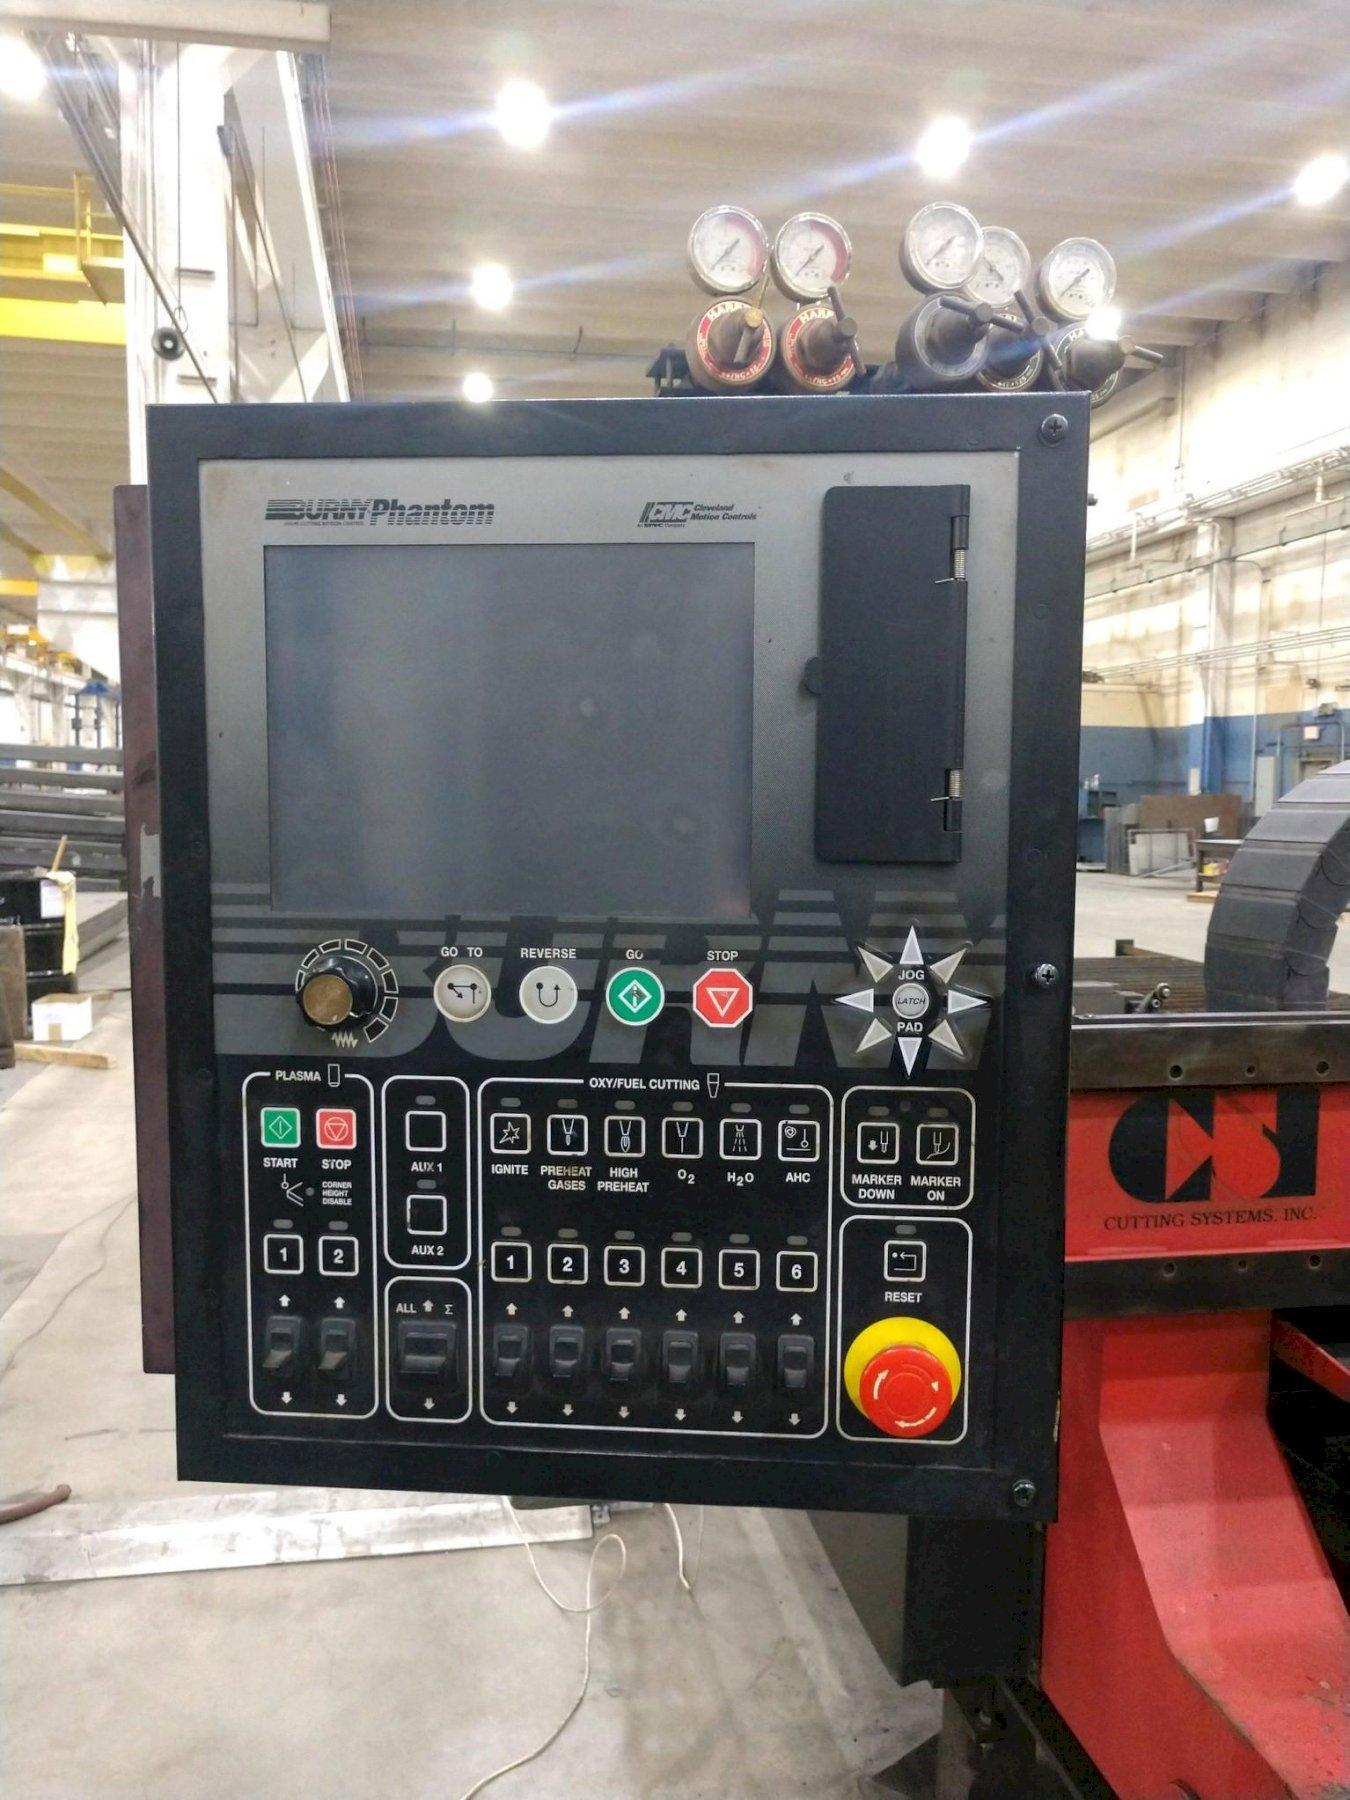 USED CSI KODIAK CNC OXY FUEL CUTTING SYSTEM, Year 2007, Stock #10709